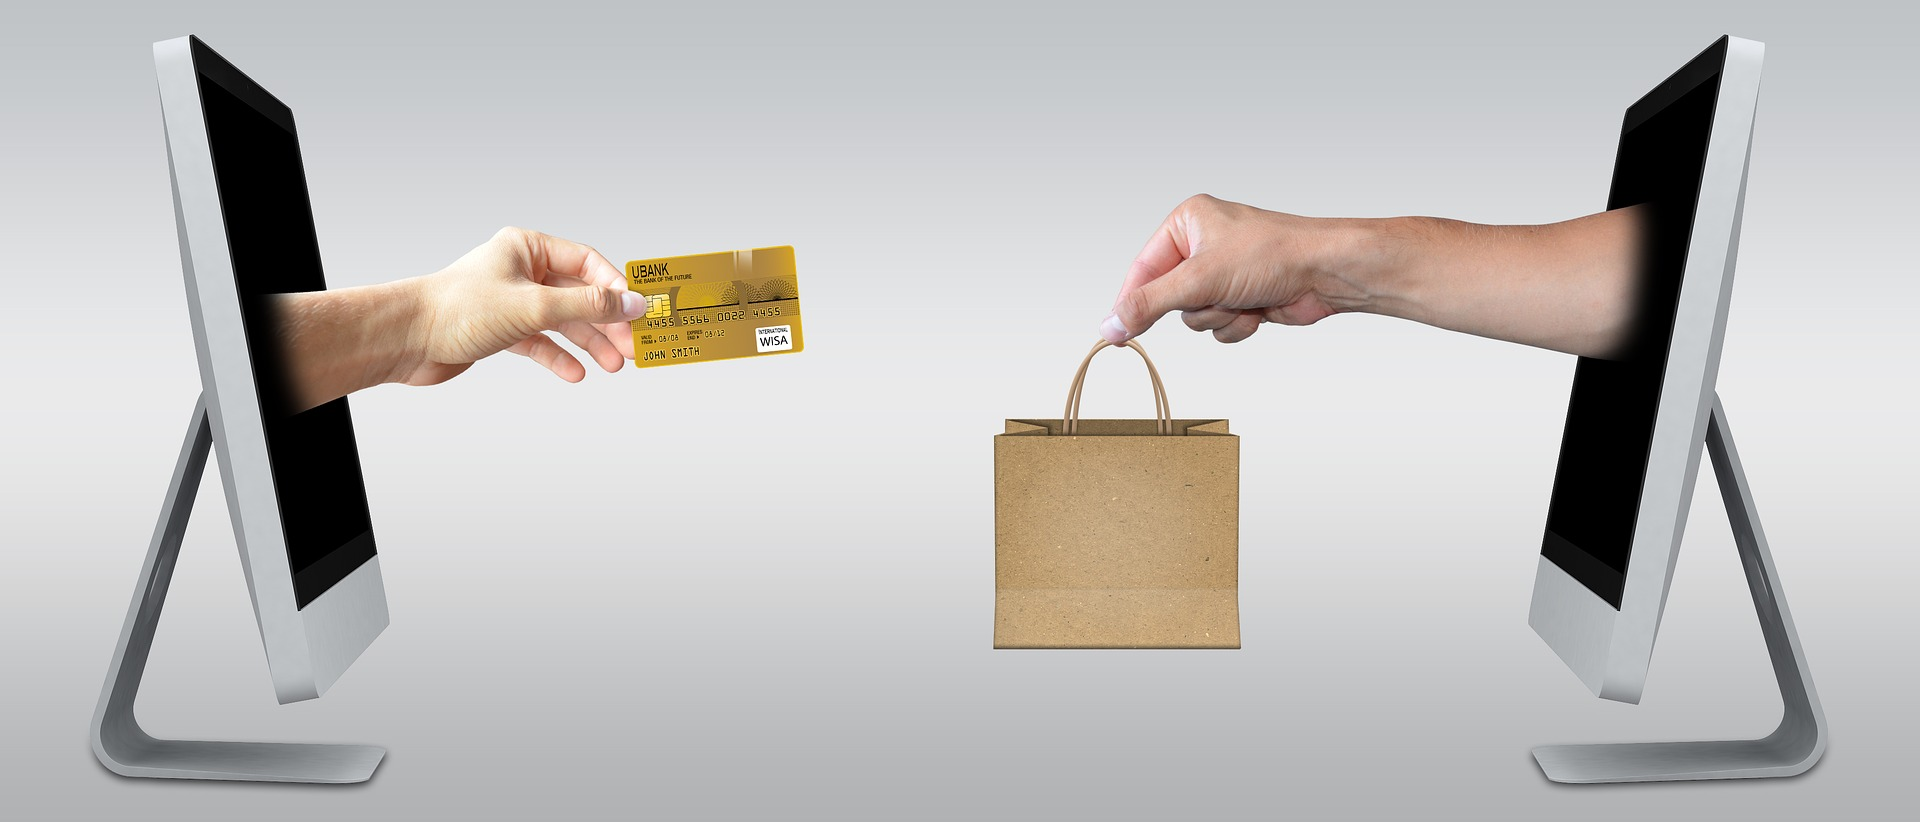 Whitelabel and e-commerce as possibilities to sell complete e-learnings